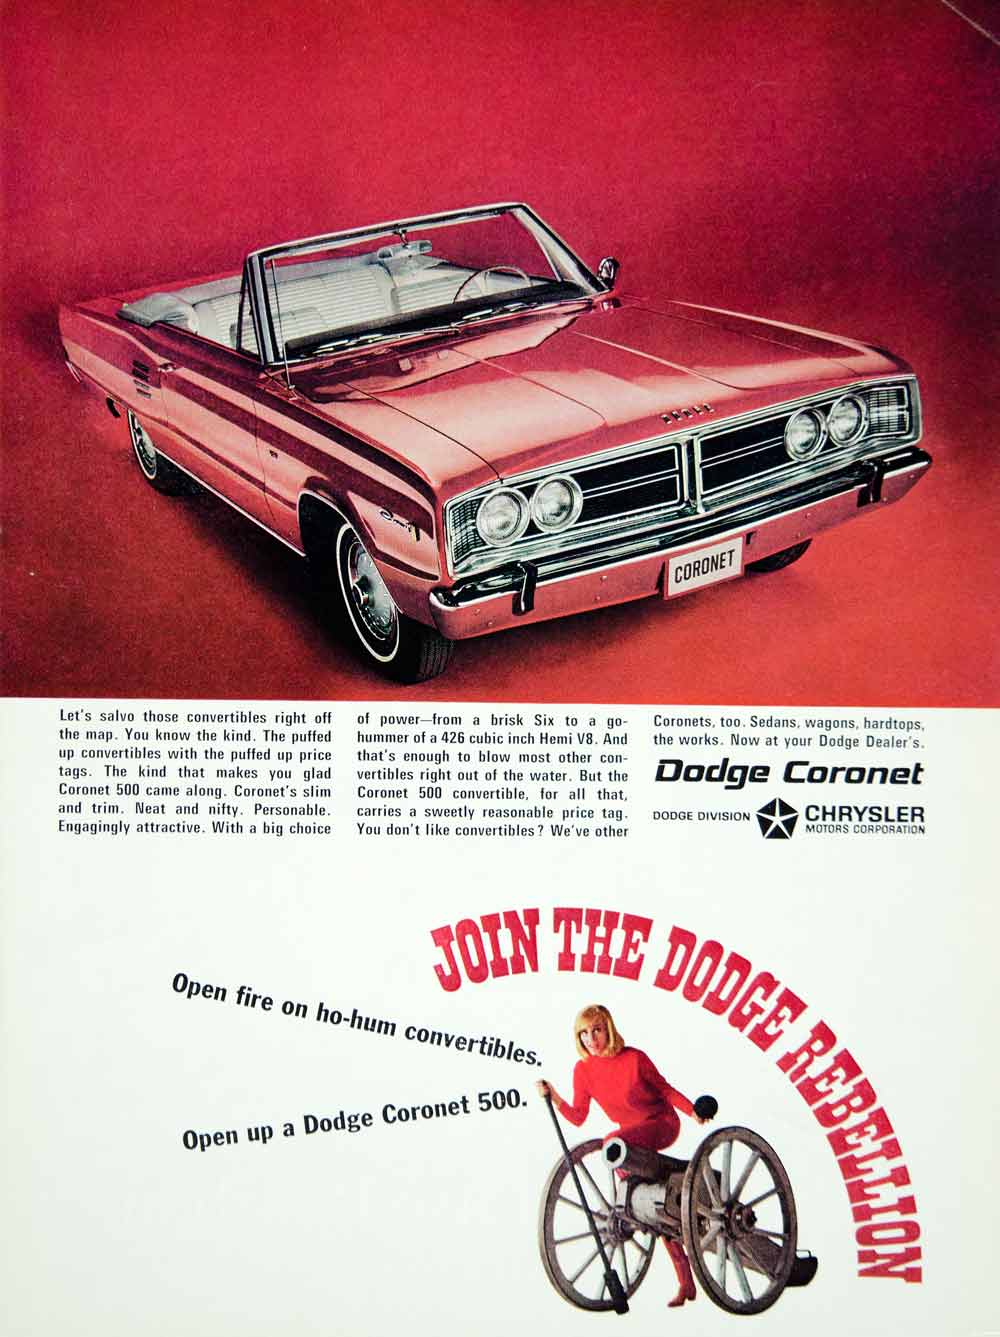 1966 Ad Vintage Chrysler Dodge Coronet 500 Convertible Car Red Automobile YMMA3